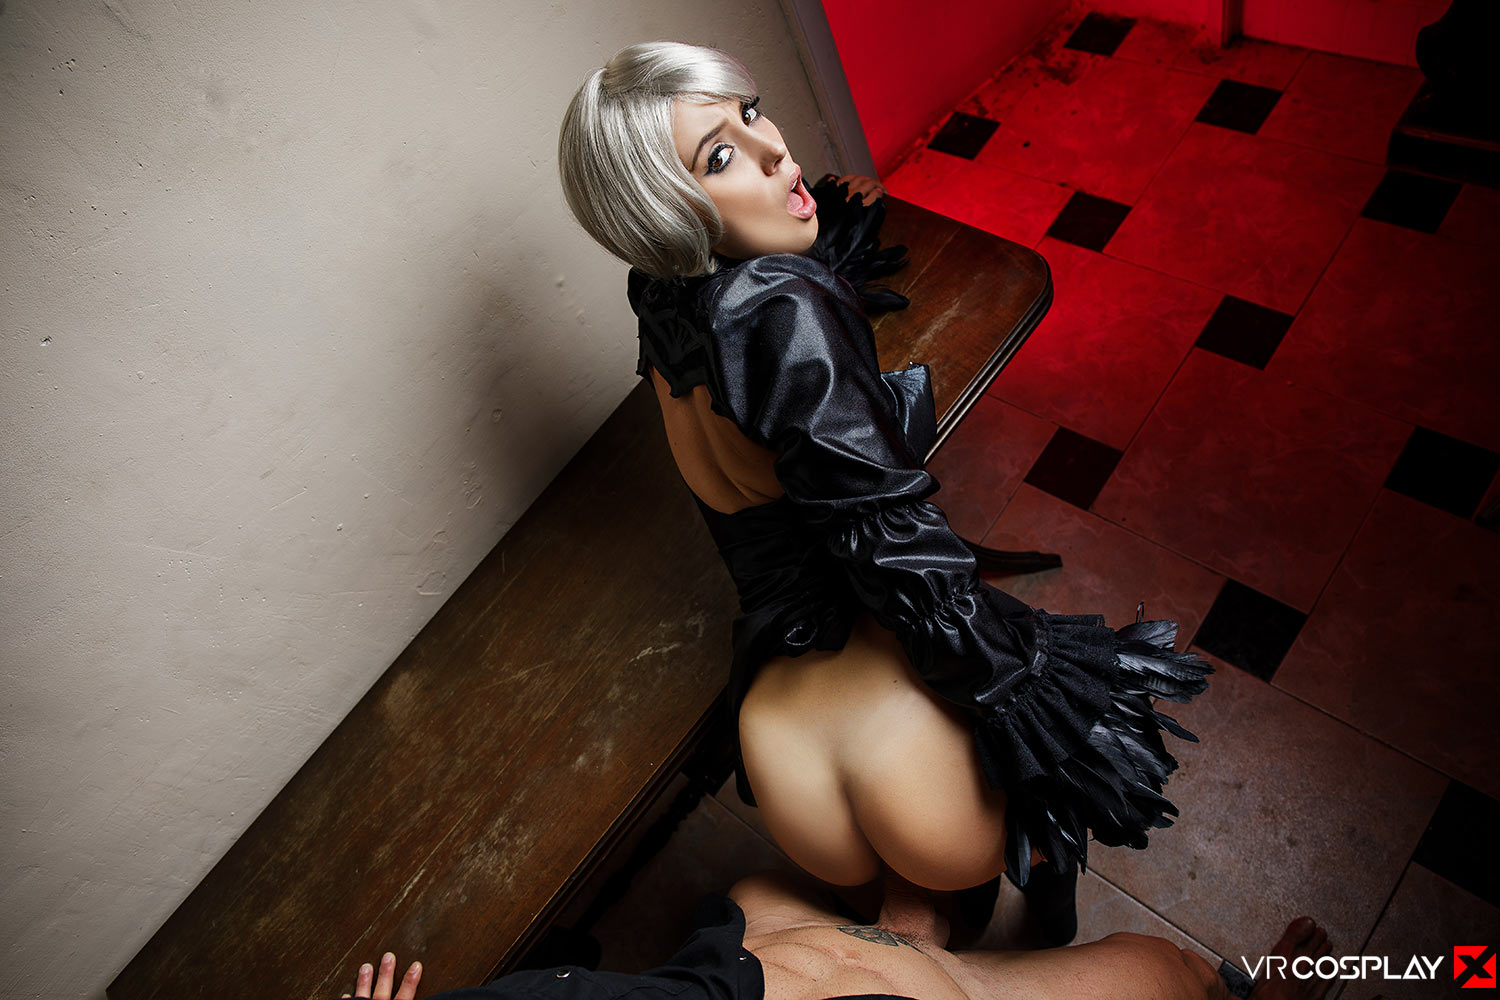 NieR: Automata VR Porn Cosplay starring Zoe Doll as 2B